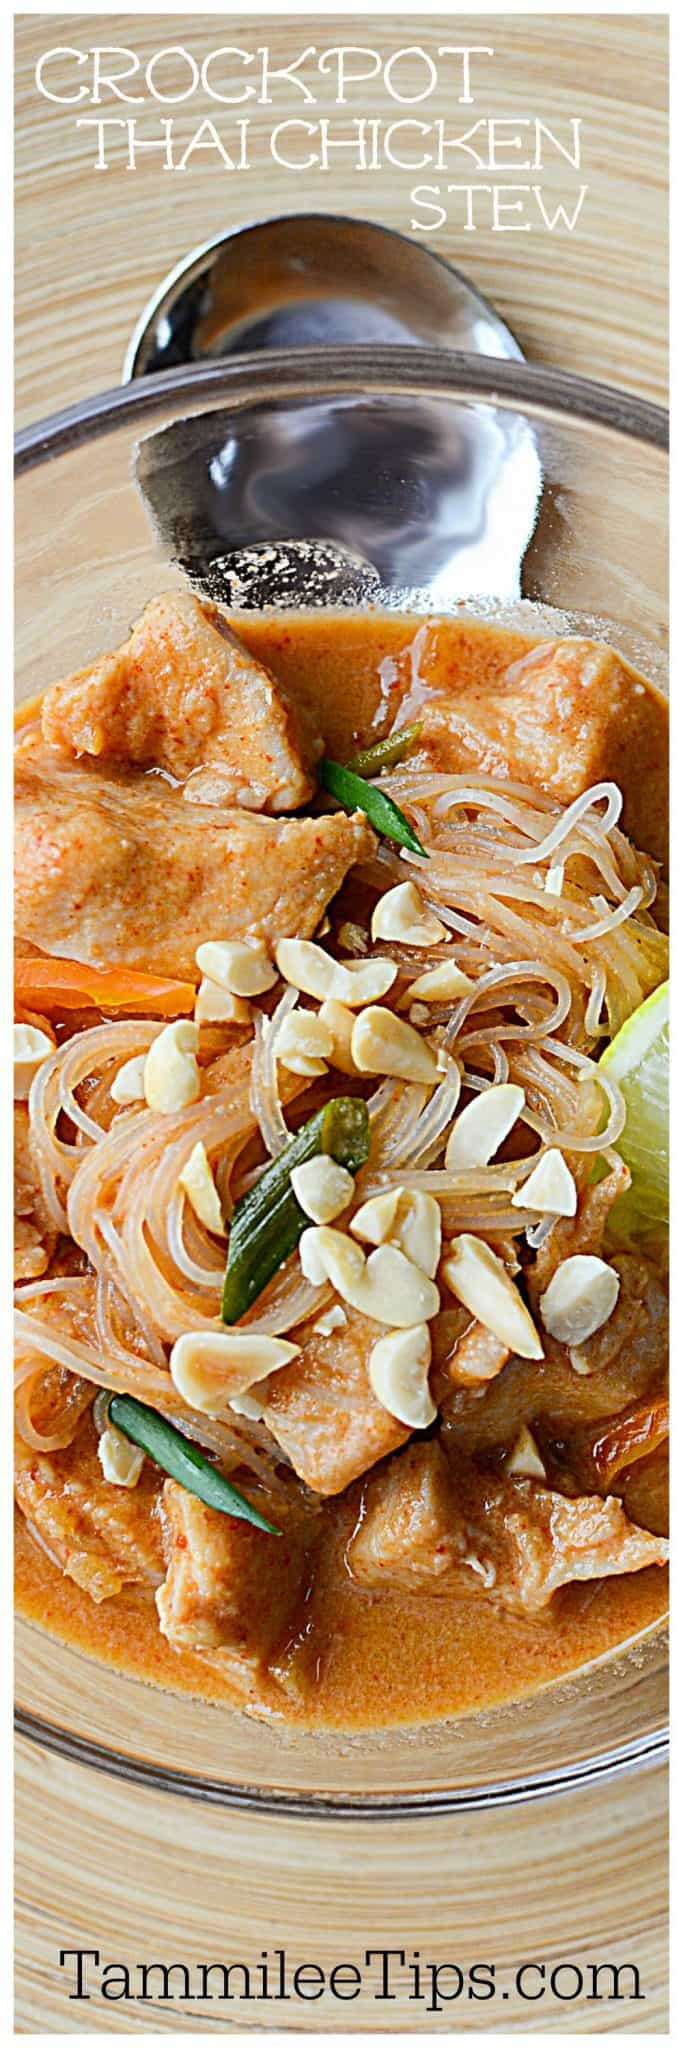 Crock Pot Thai Chicken Stew Recipe! Let the slow cooker do all the work and you get this great soup recipe with tons of flavor! Makes great leftovers!